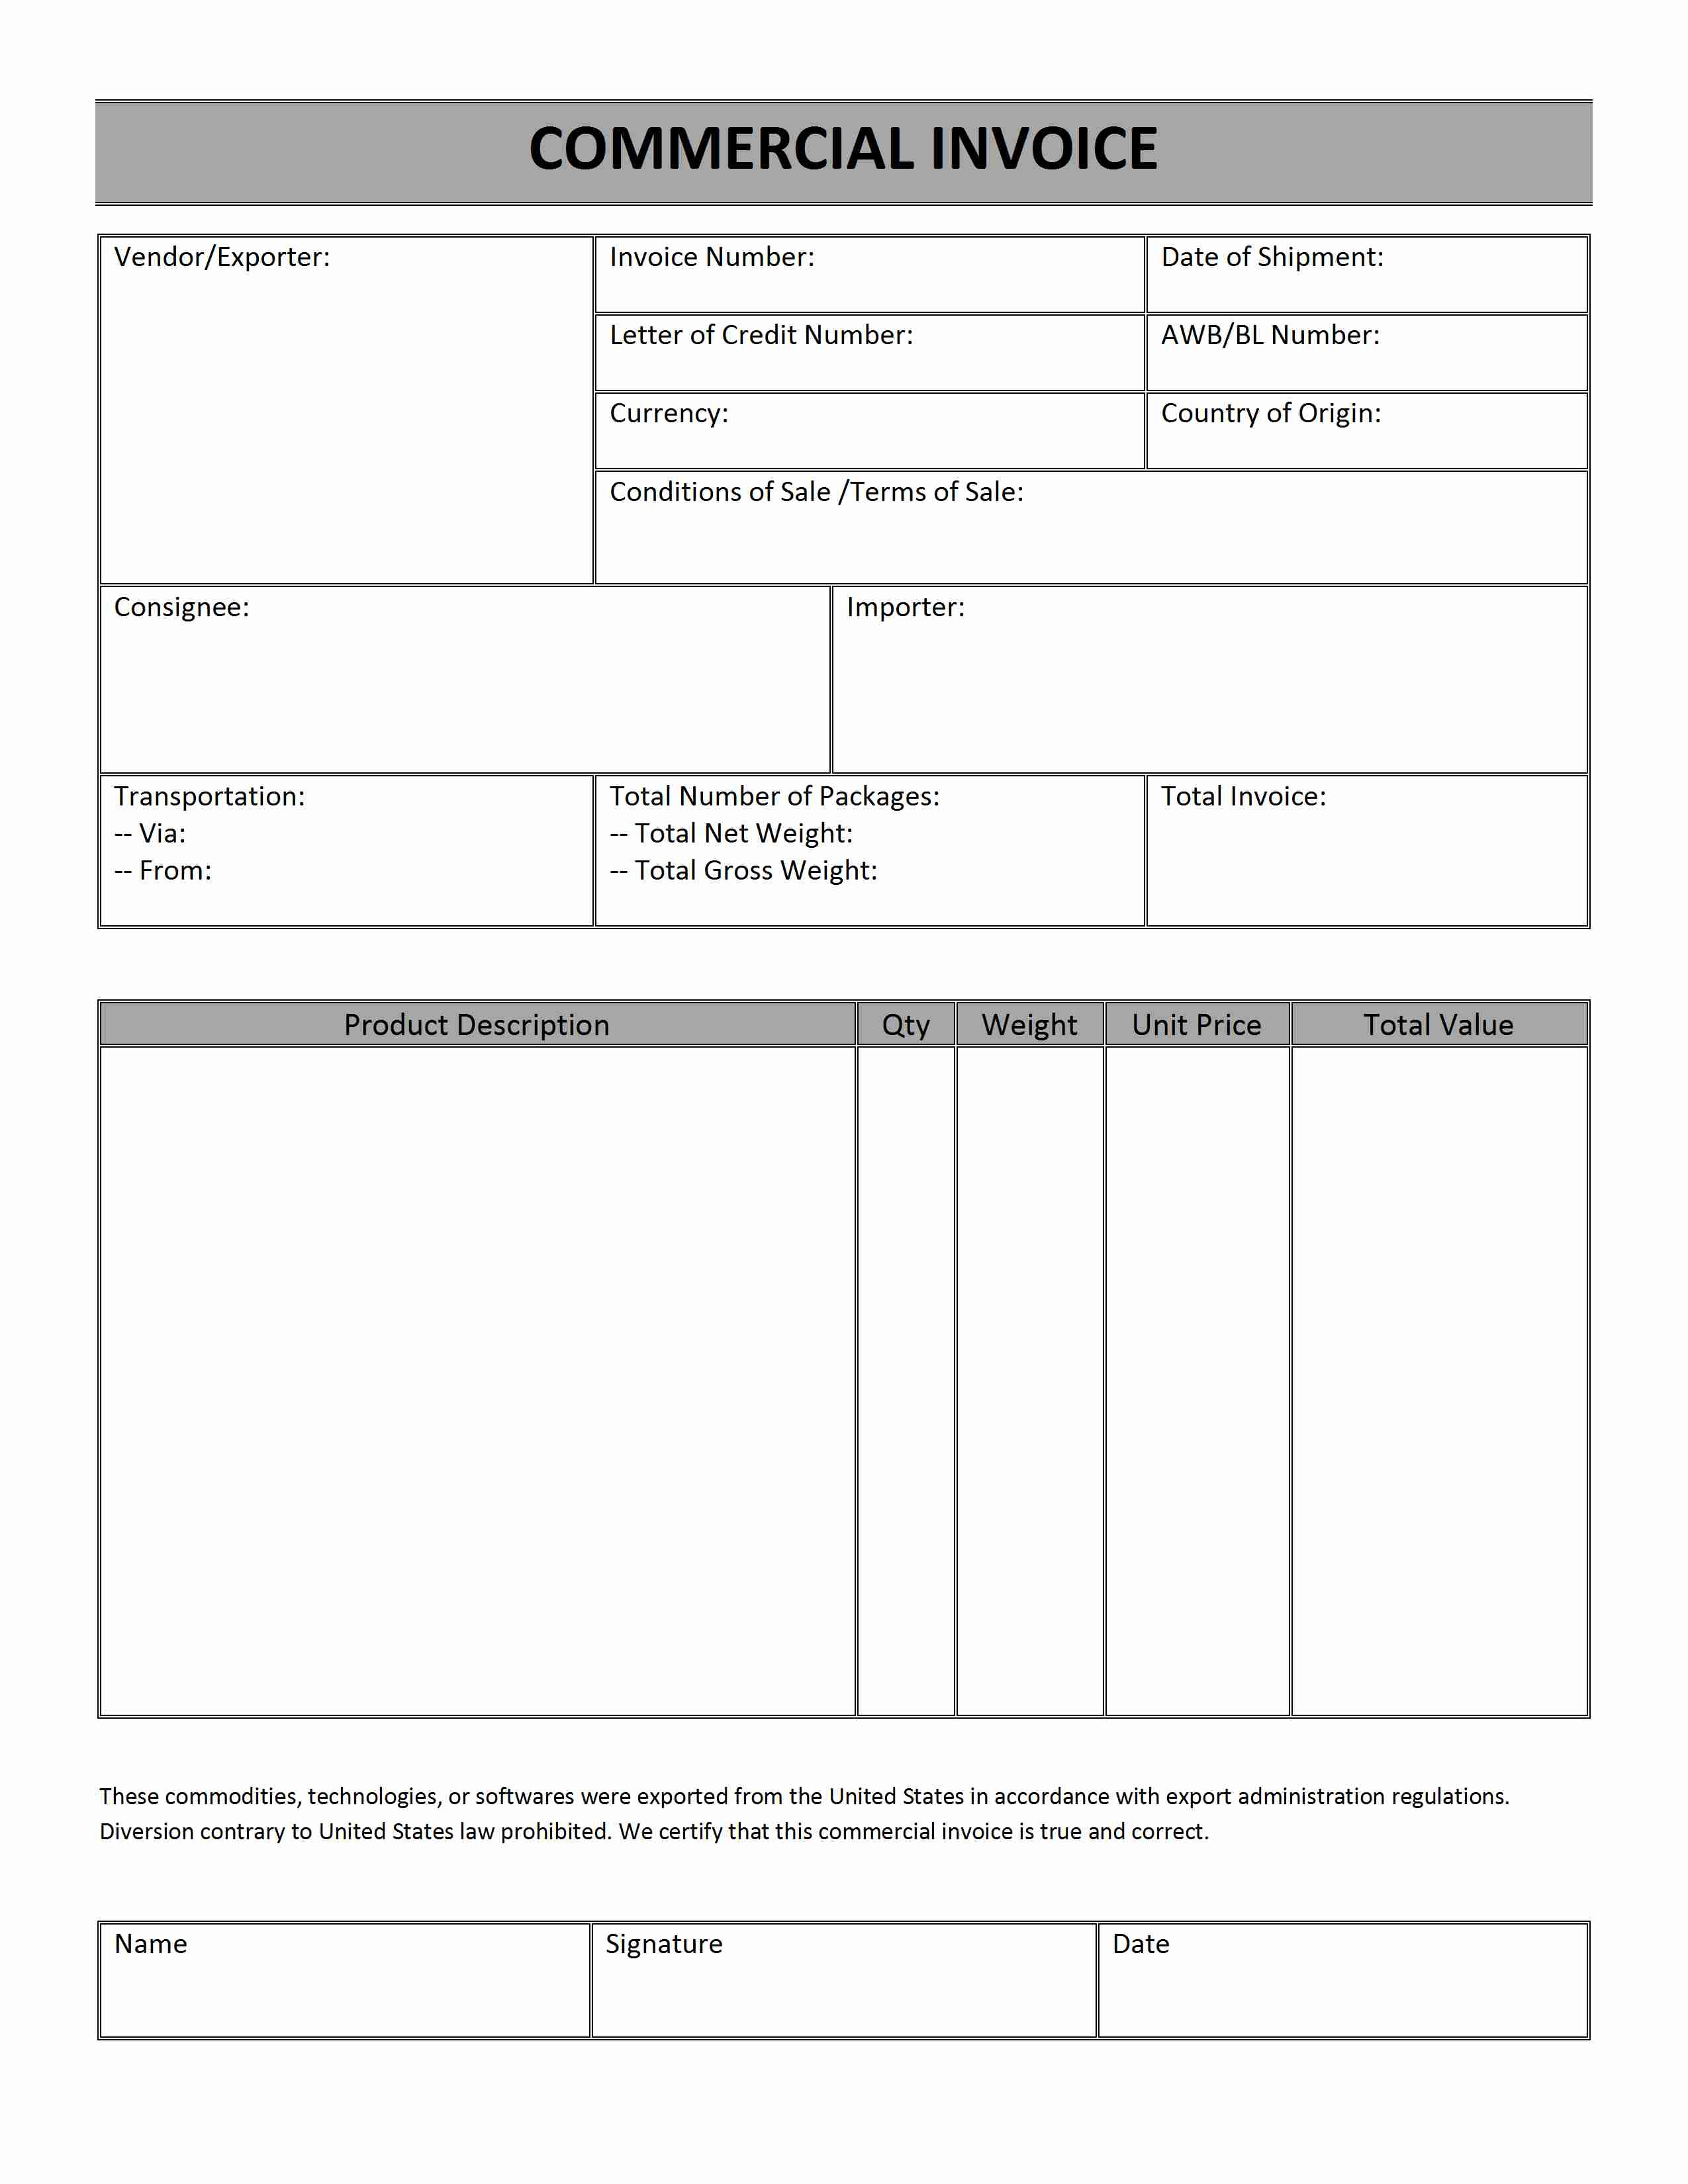 Ebitus  Remarkable Printable Sales Invoice Simple Invoice Form Free Invoice  With Fetching Printable Receipt Free  Free Printable Raffle Tickets  Receipt   Printable With Lovely Invoice Pads Also Lawn Care Invoice Template In Addition Download Invoice Template Word And Overdue Invoice As Well As Receipt Invoice Additionally Invoice Statement Template From Happytomco With Ebitus  Fetching Printable Sales Invoice Simple Invoice Form Free Invoice  With Lovely Printable Receipt Free  Free Printable Raffle Tickets  Receipt   Printable And Remarkable Invoice Pads Also Lawn Care Invoice Template In Addition Download Invoice Template Word From Happytomco